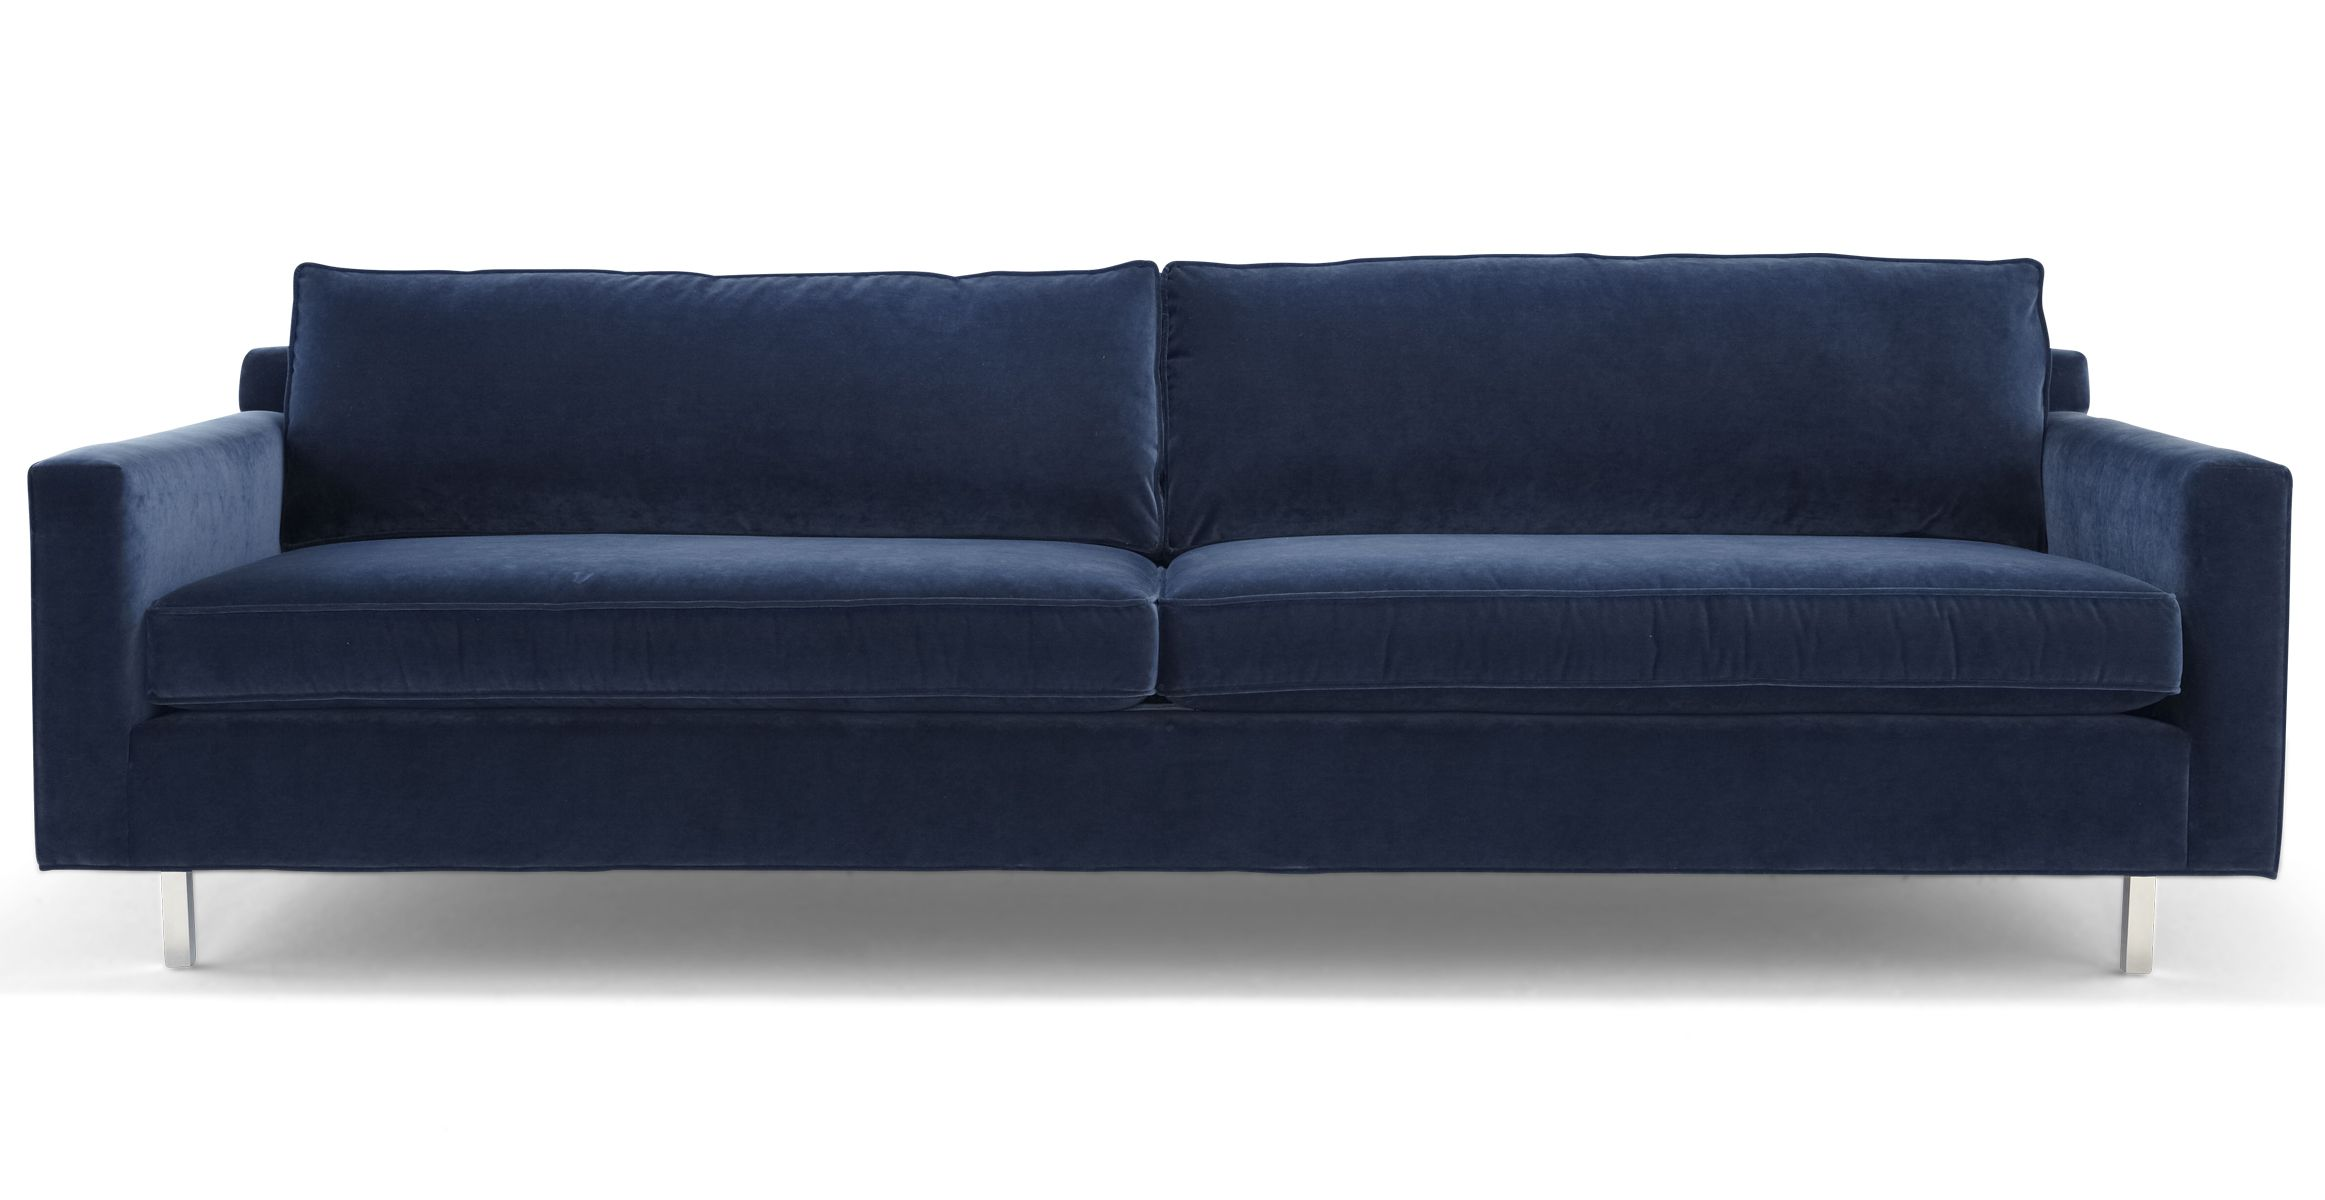 Hunter Wood Leg Sofa Mitchell Gold Bob Williams This Is A More Contemporary Direction But I Like How Low The Back To Carry E Through From